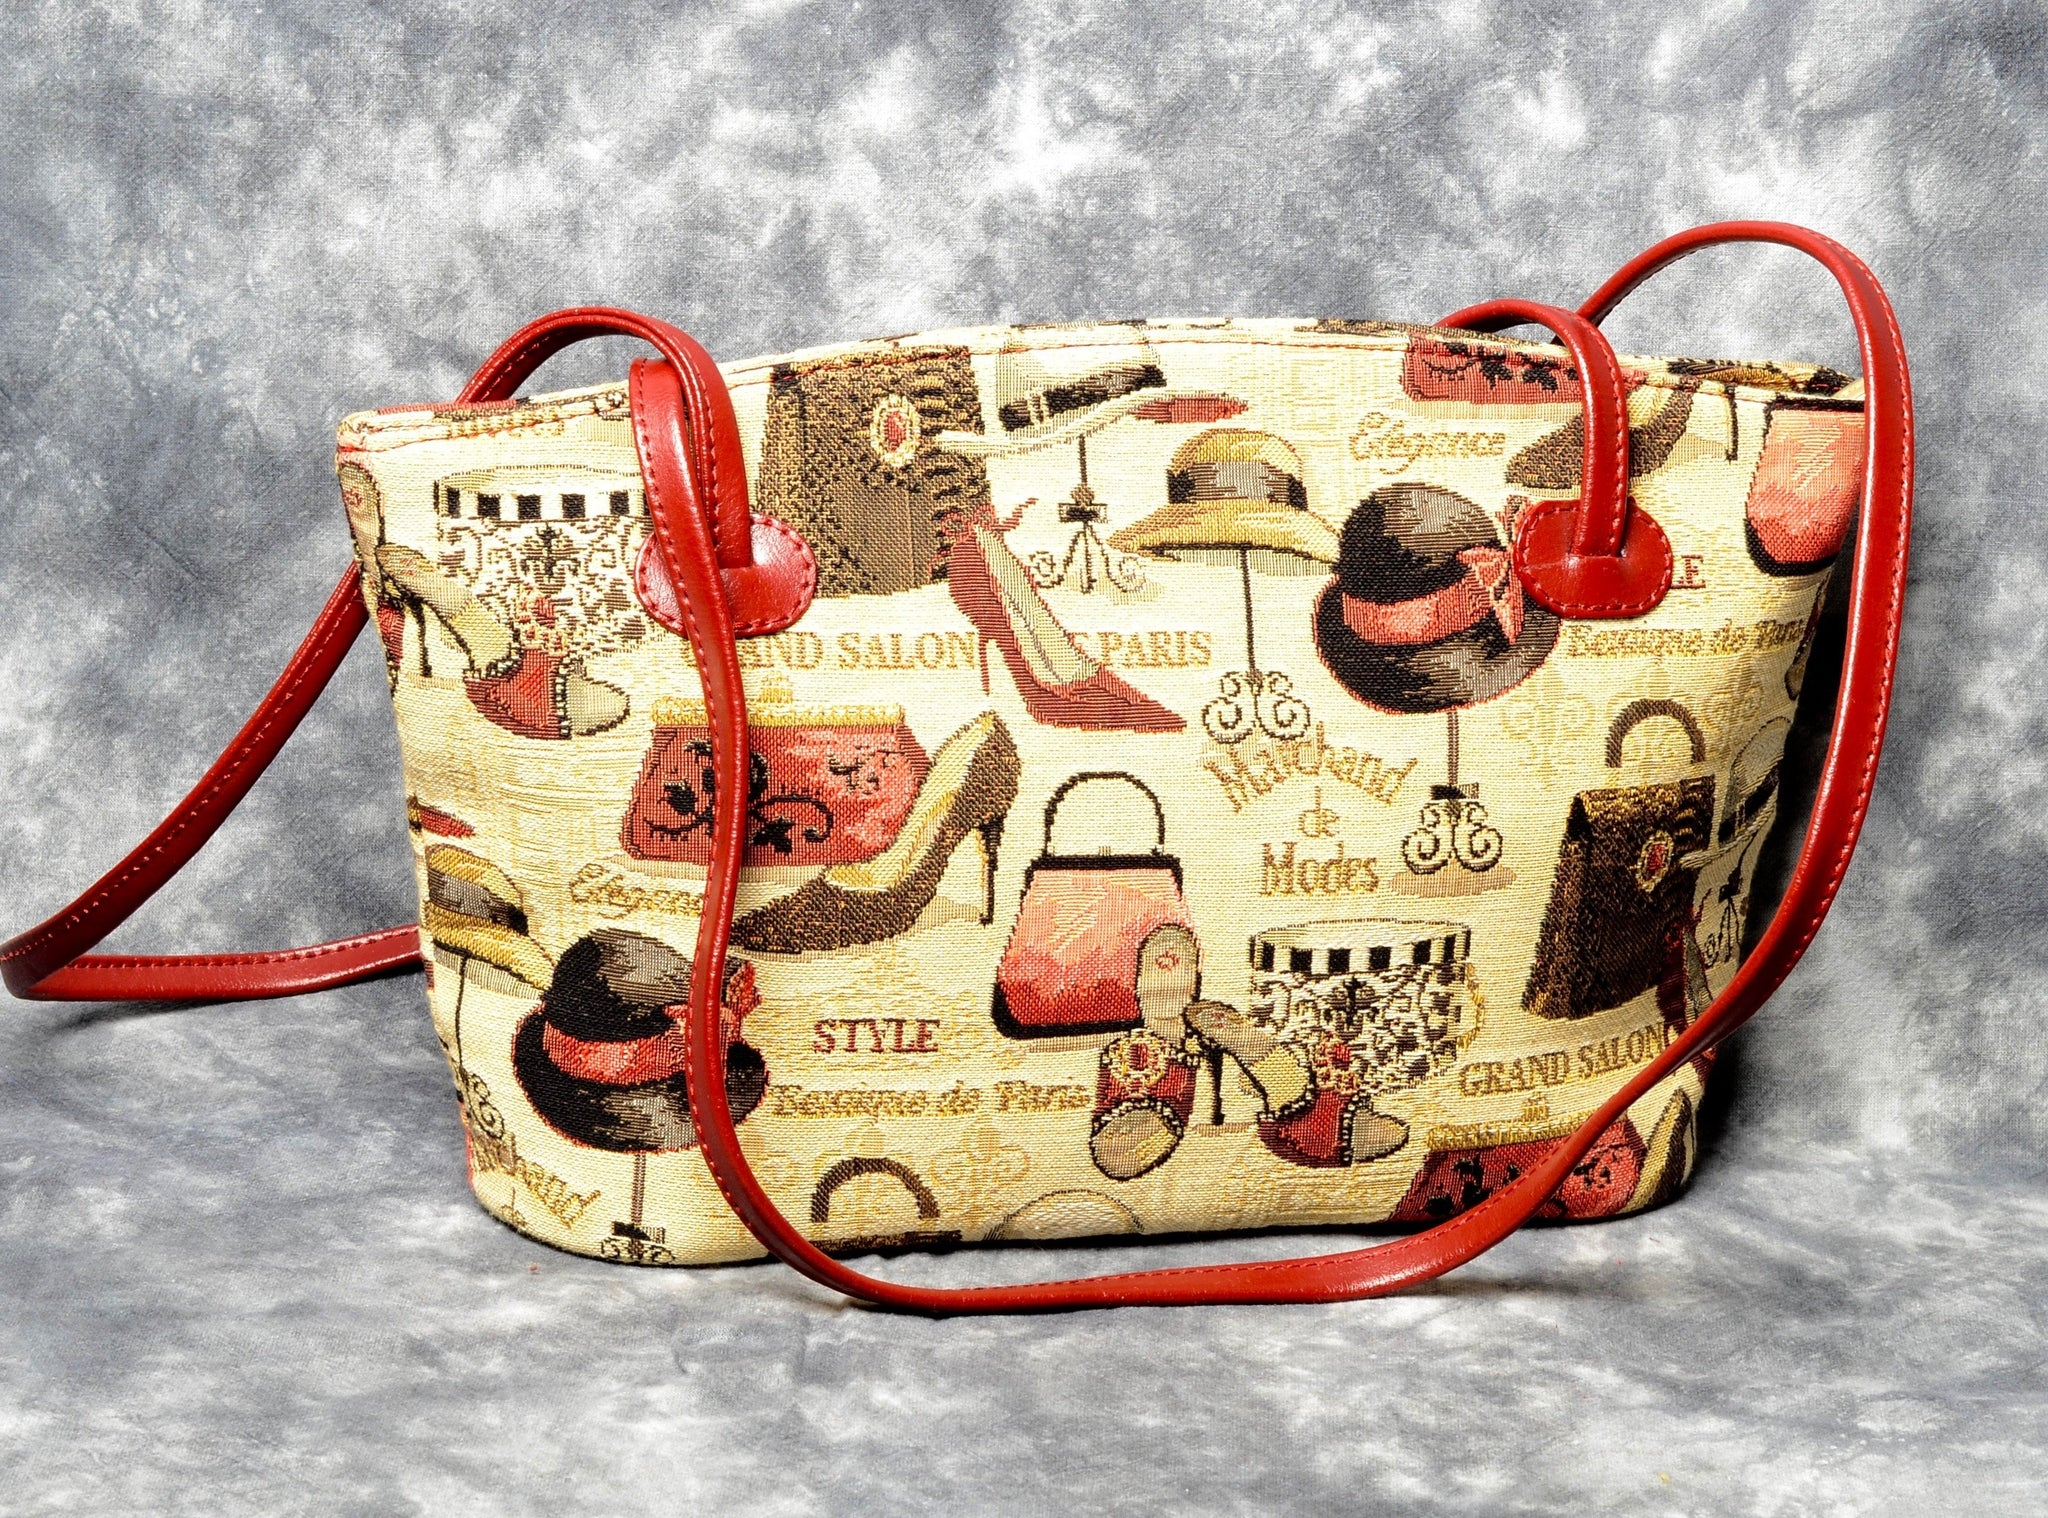 Belgian Tapestry Shoulder Bag with Leather Accents - Fashion Accessories Motif